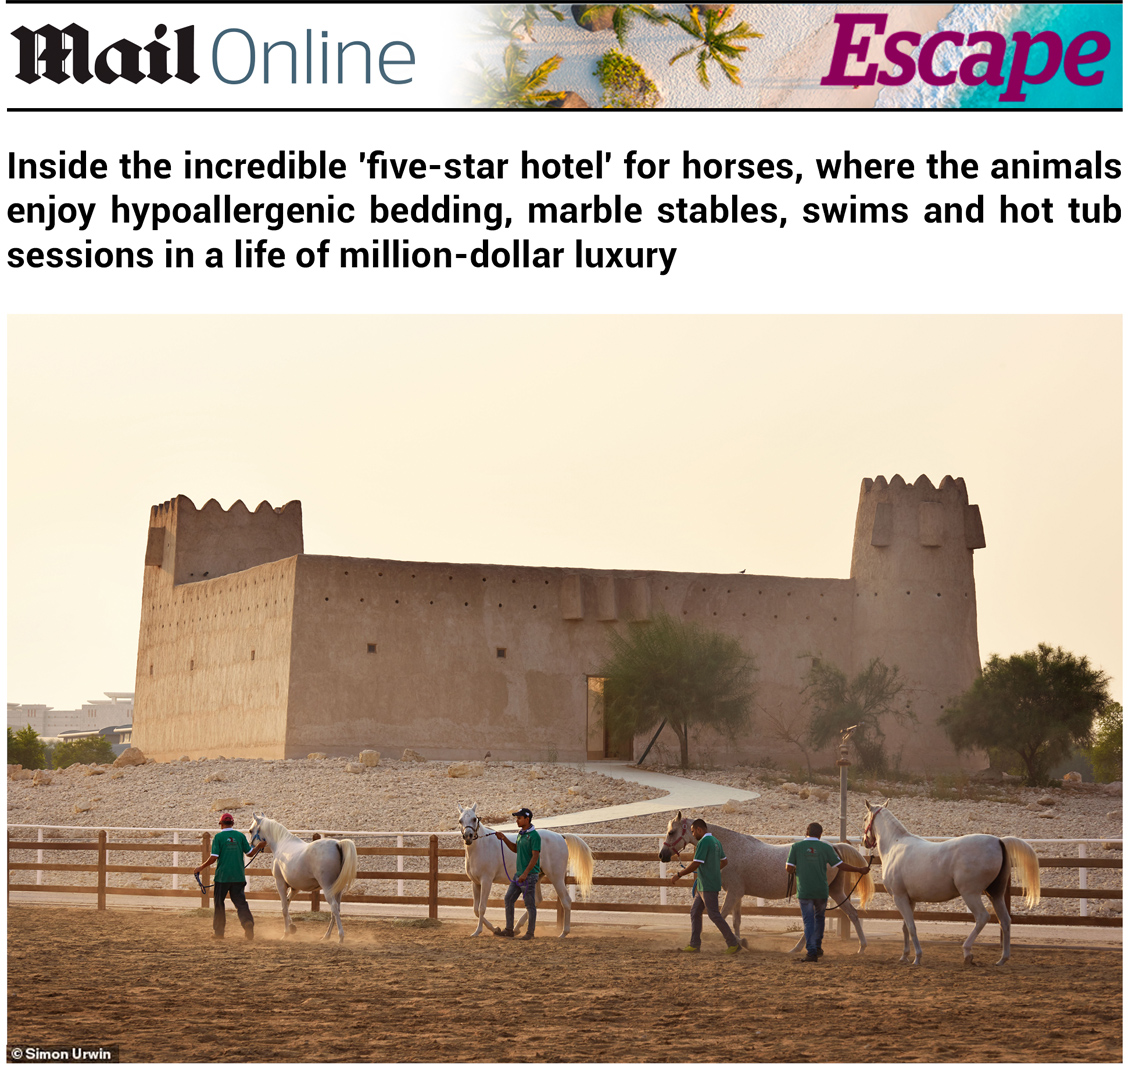 Qatar | Daily Mail | Simon Urwin | Published Articles & Photography